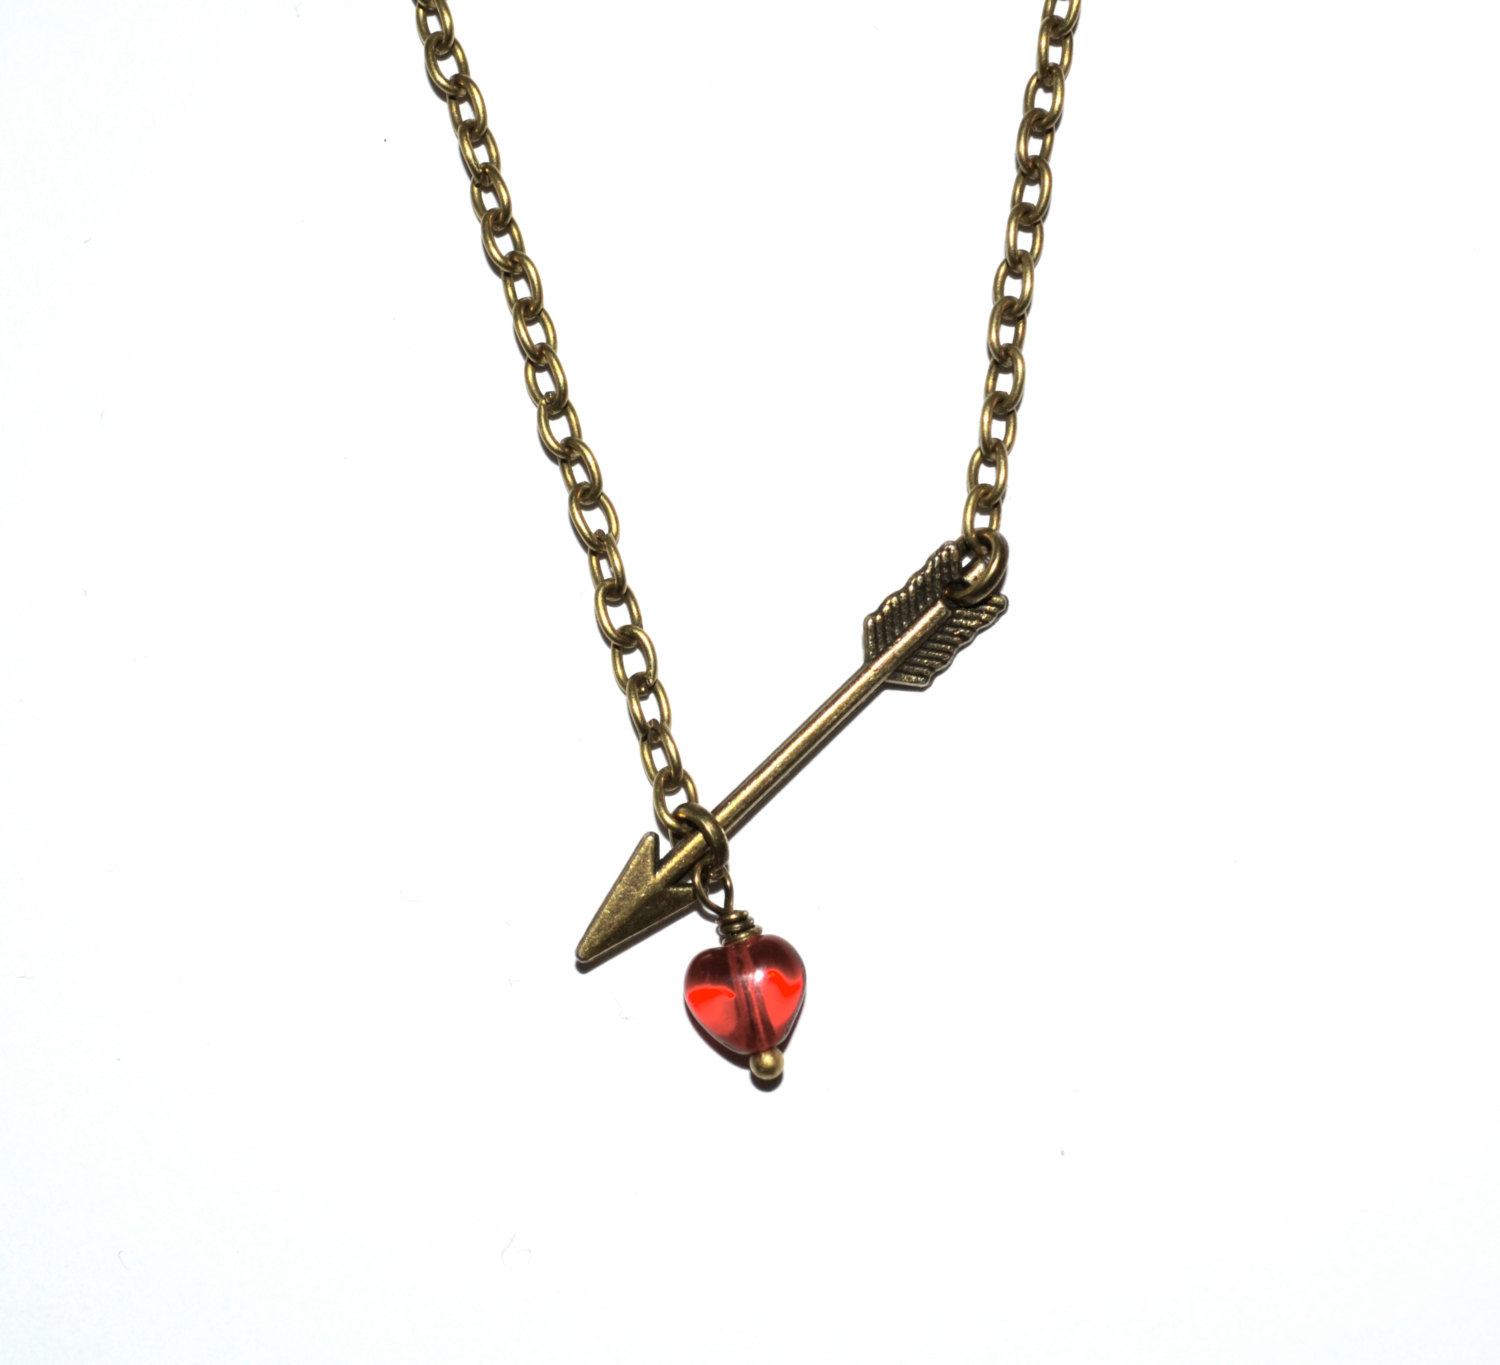 Arrow Necklace, Red Love Heart, Cupid's Arrow, Simple Necklace, Arrow Pendant, Bronze Arrow, Everyday Jewellery, Love Heart, Heart And Arrow With Regard To 2019 Arrow Of Cupid Dangle Charm Necklaces (View 12 of 25)